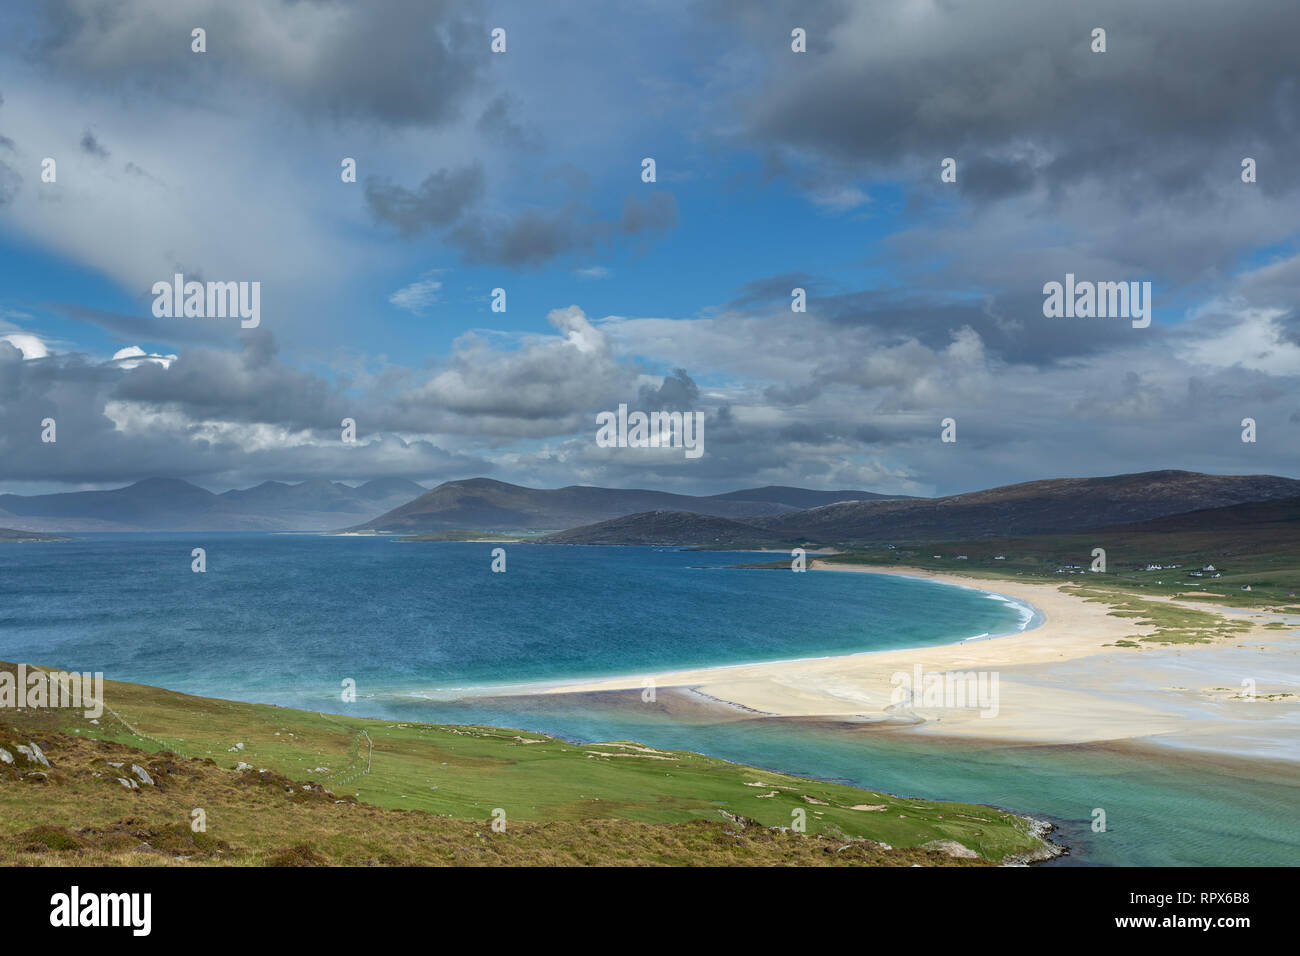 Scarasta beach from the slopes of Ceapabhal on the Isle of Harris, Outer Hebrides, Scotland - Stock Image